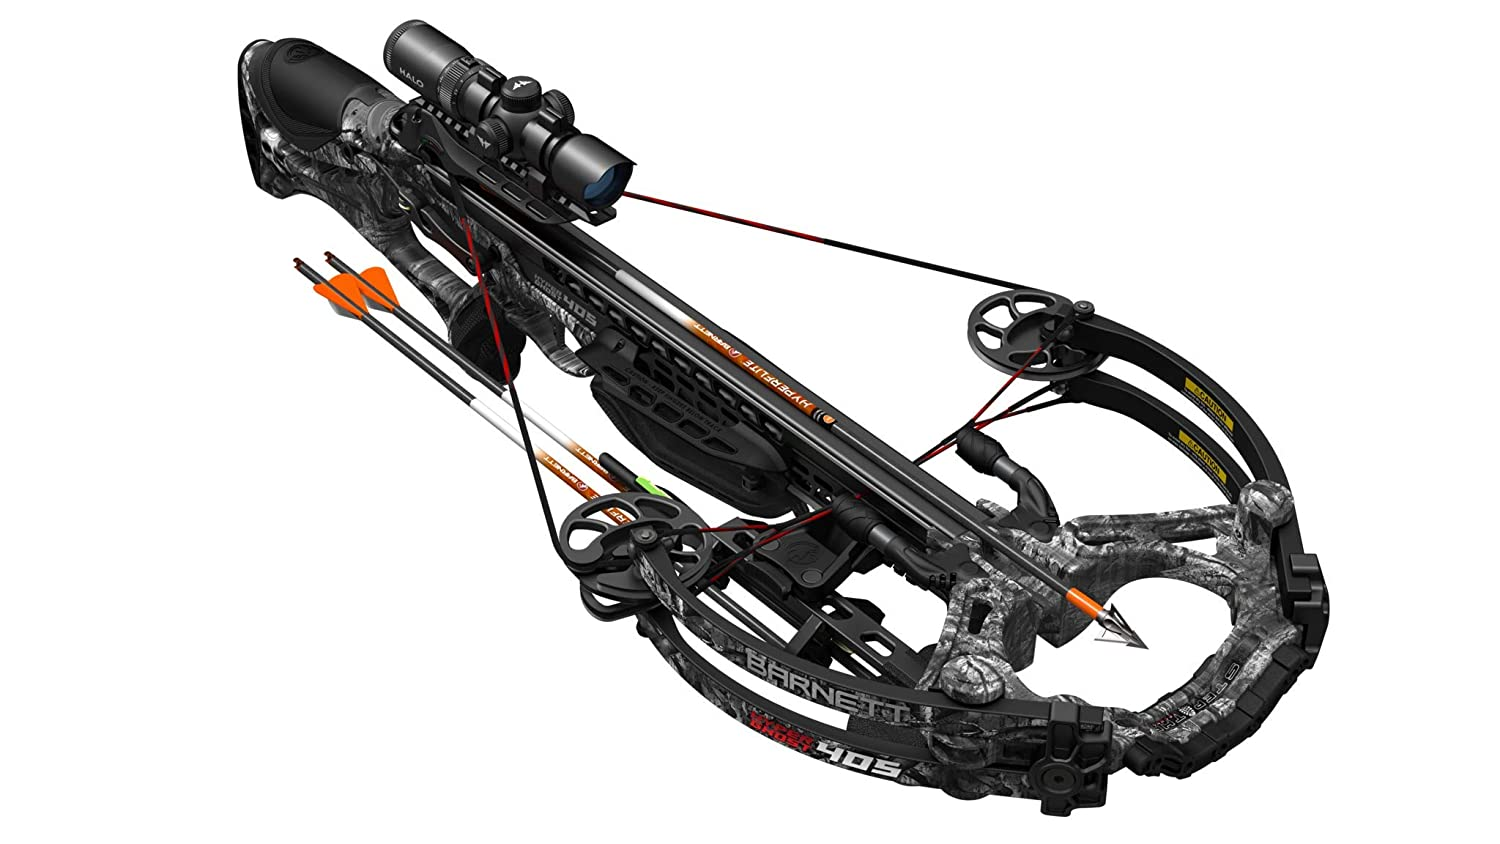 BARNETT HyperGhost 405 Crossbow in Mossy Oak Treestand Camo, Shoots 405 Feet Per Second and Includes Premium Illuminated 4X32 Scope